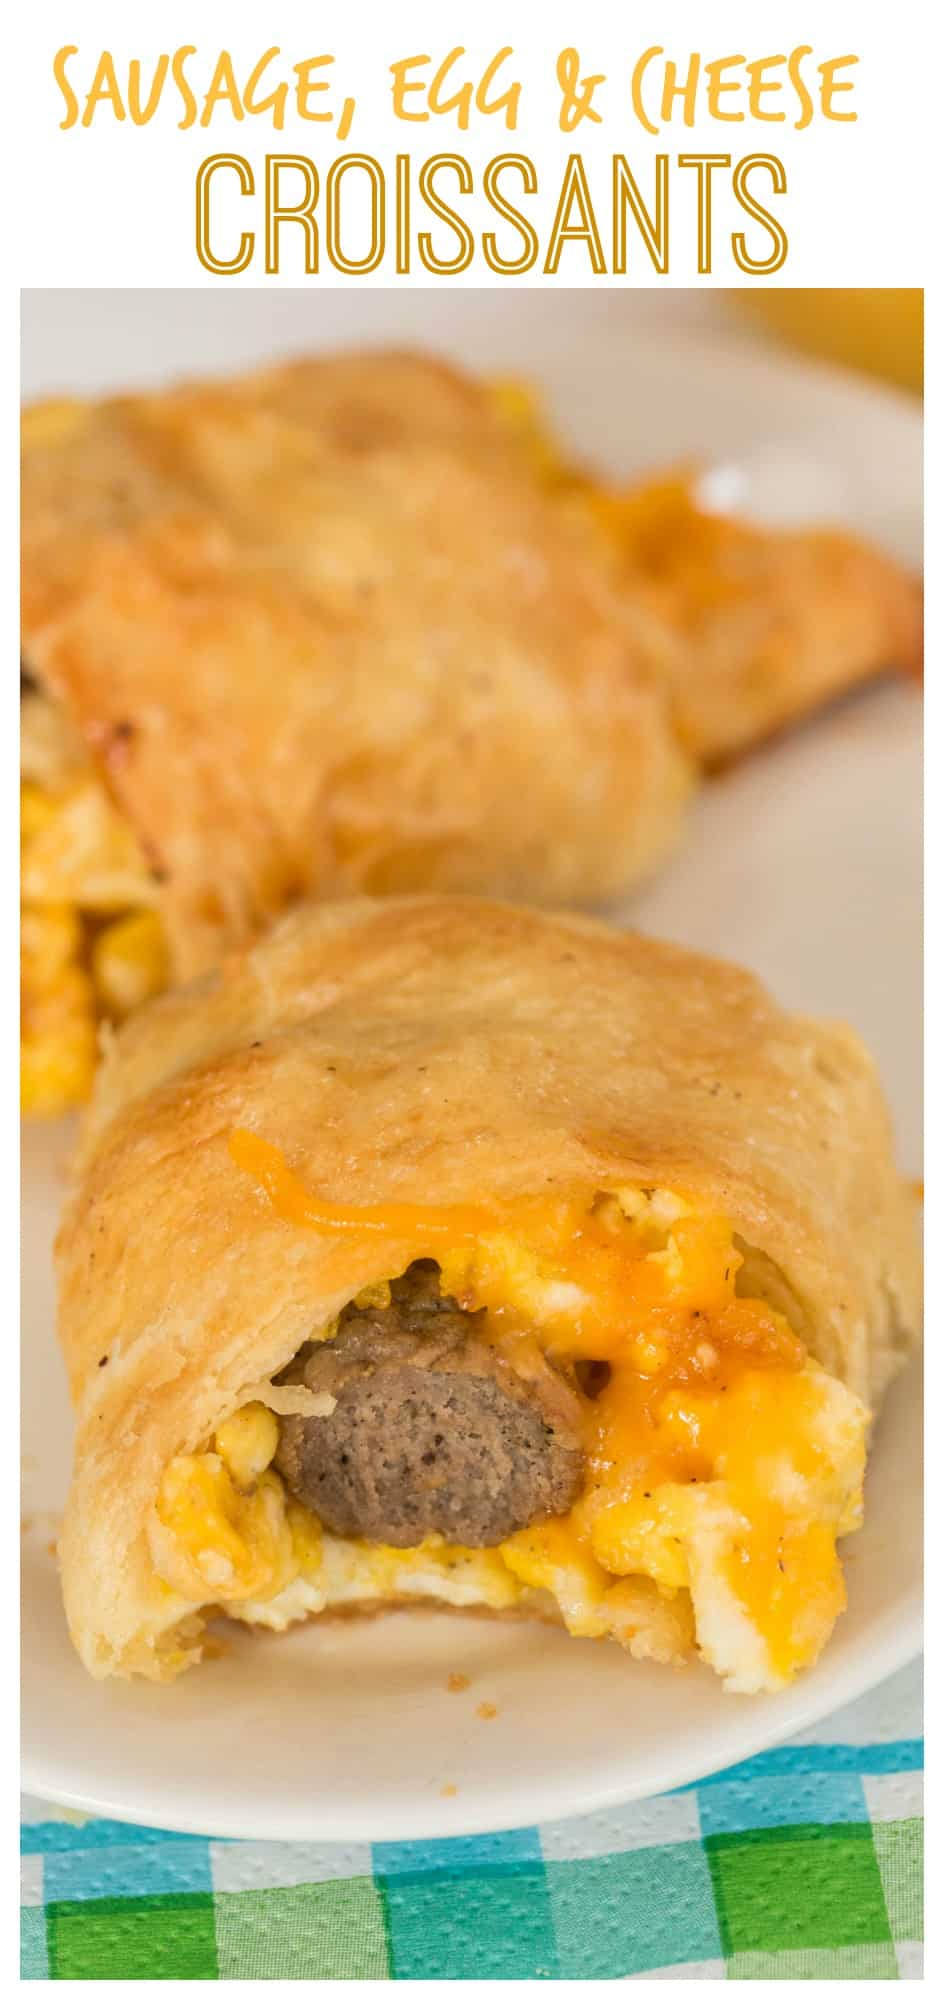 Sausage-Egg-and-Cheese-Croissants